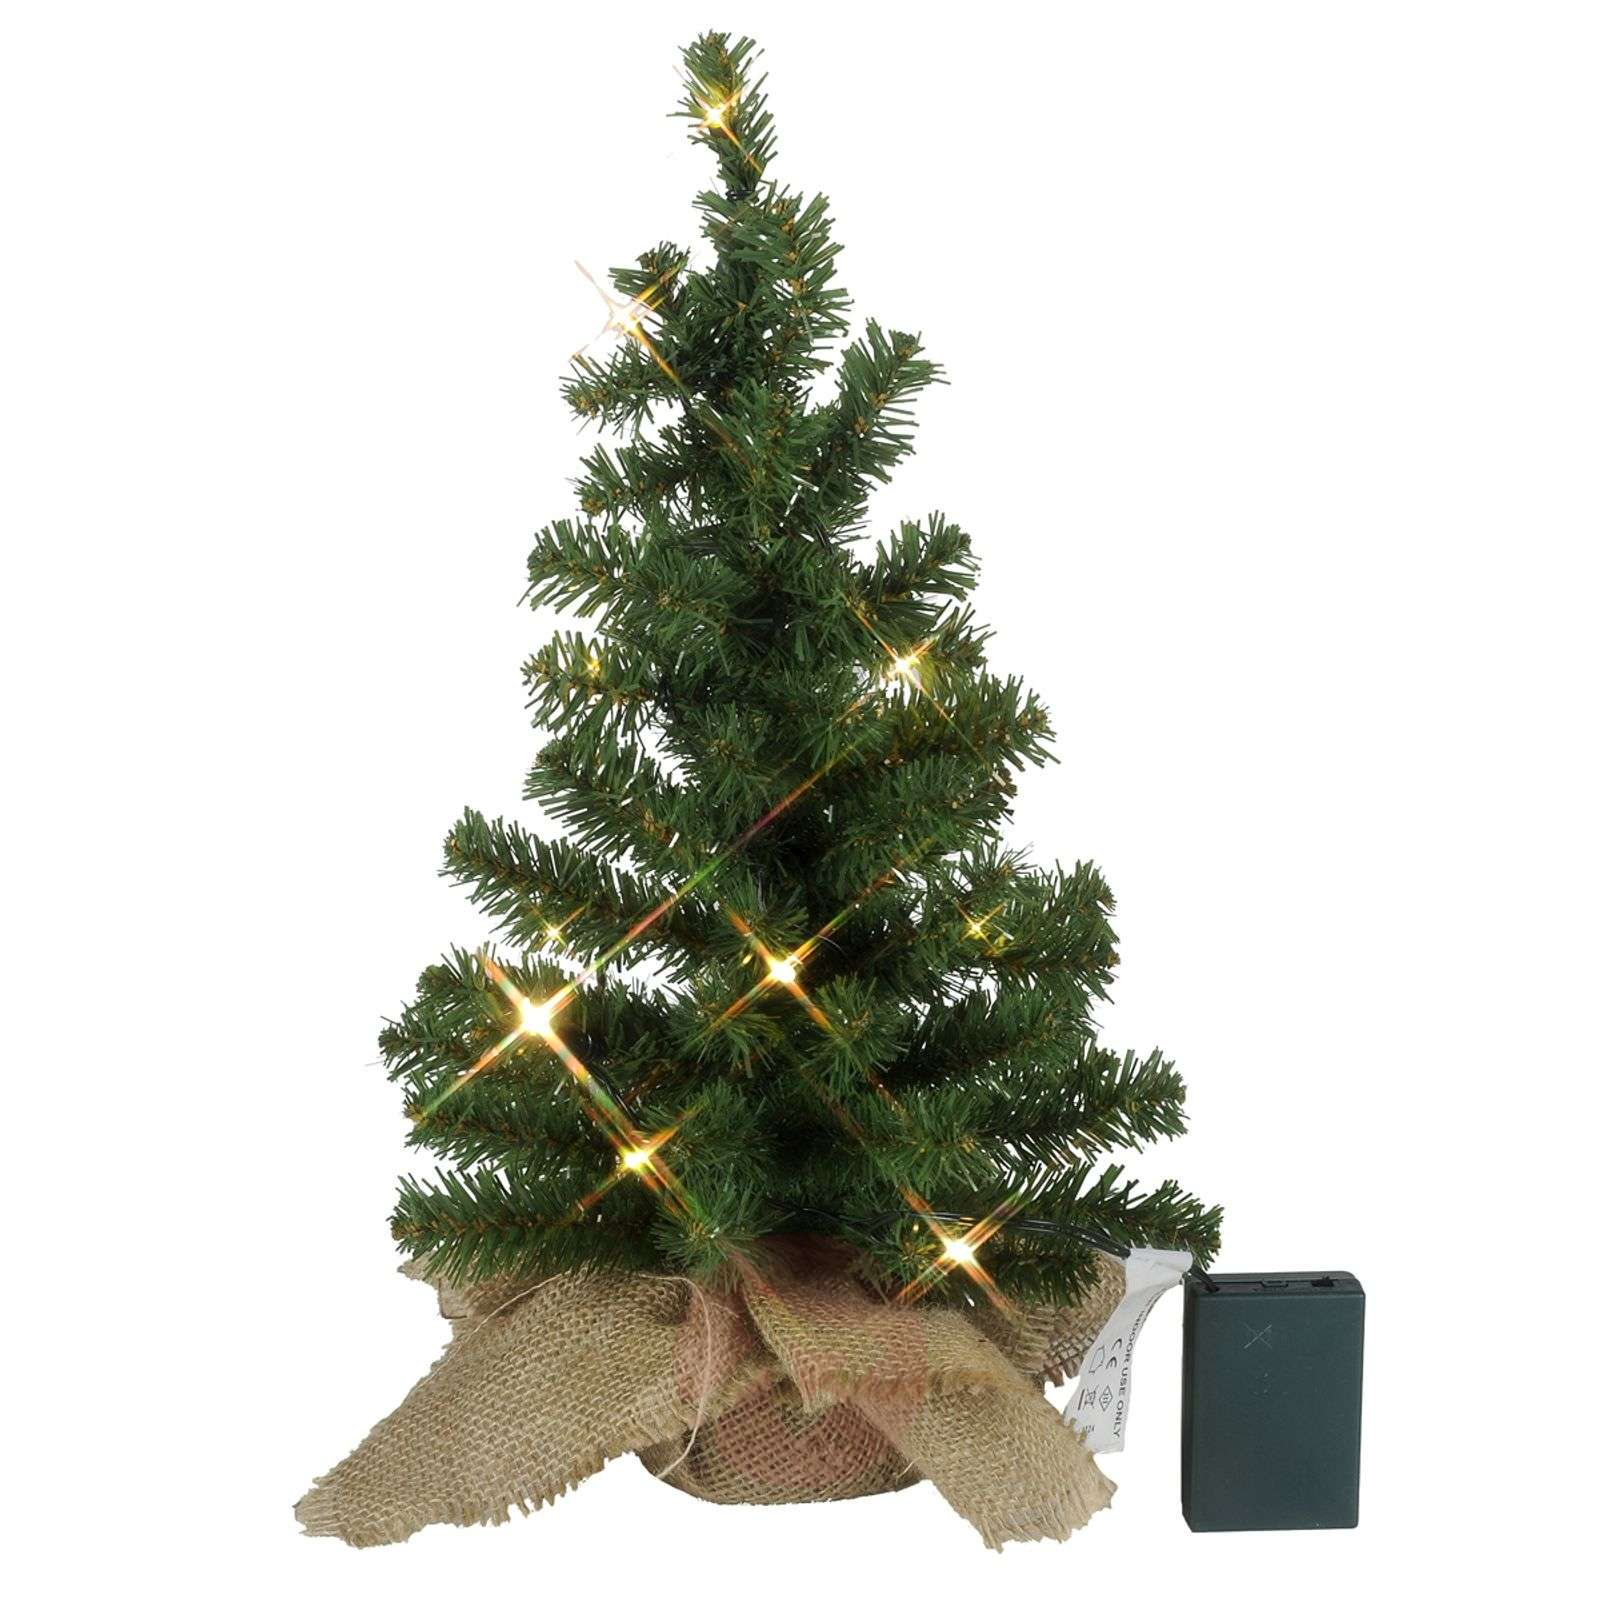 Choinka LED TREE w worku z juty-1522683-01